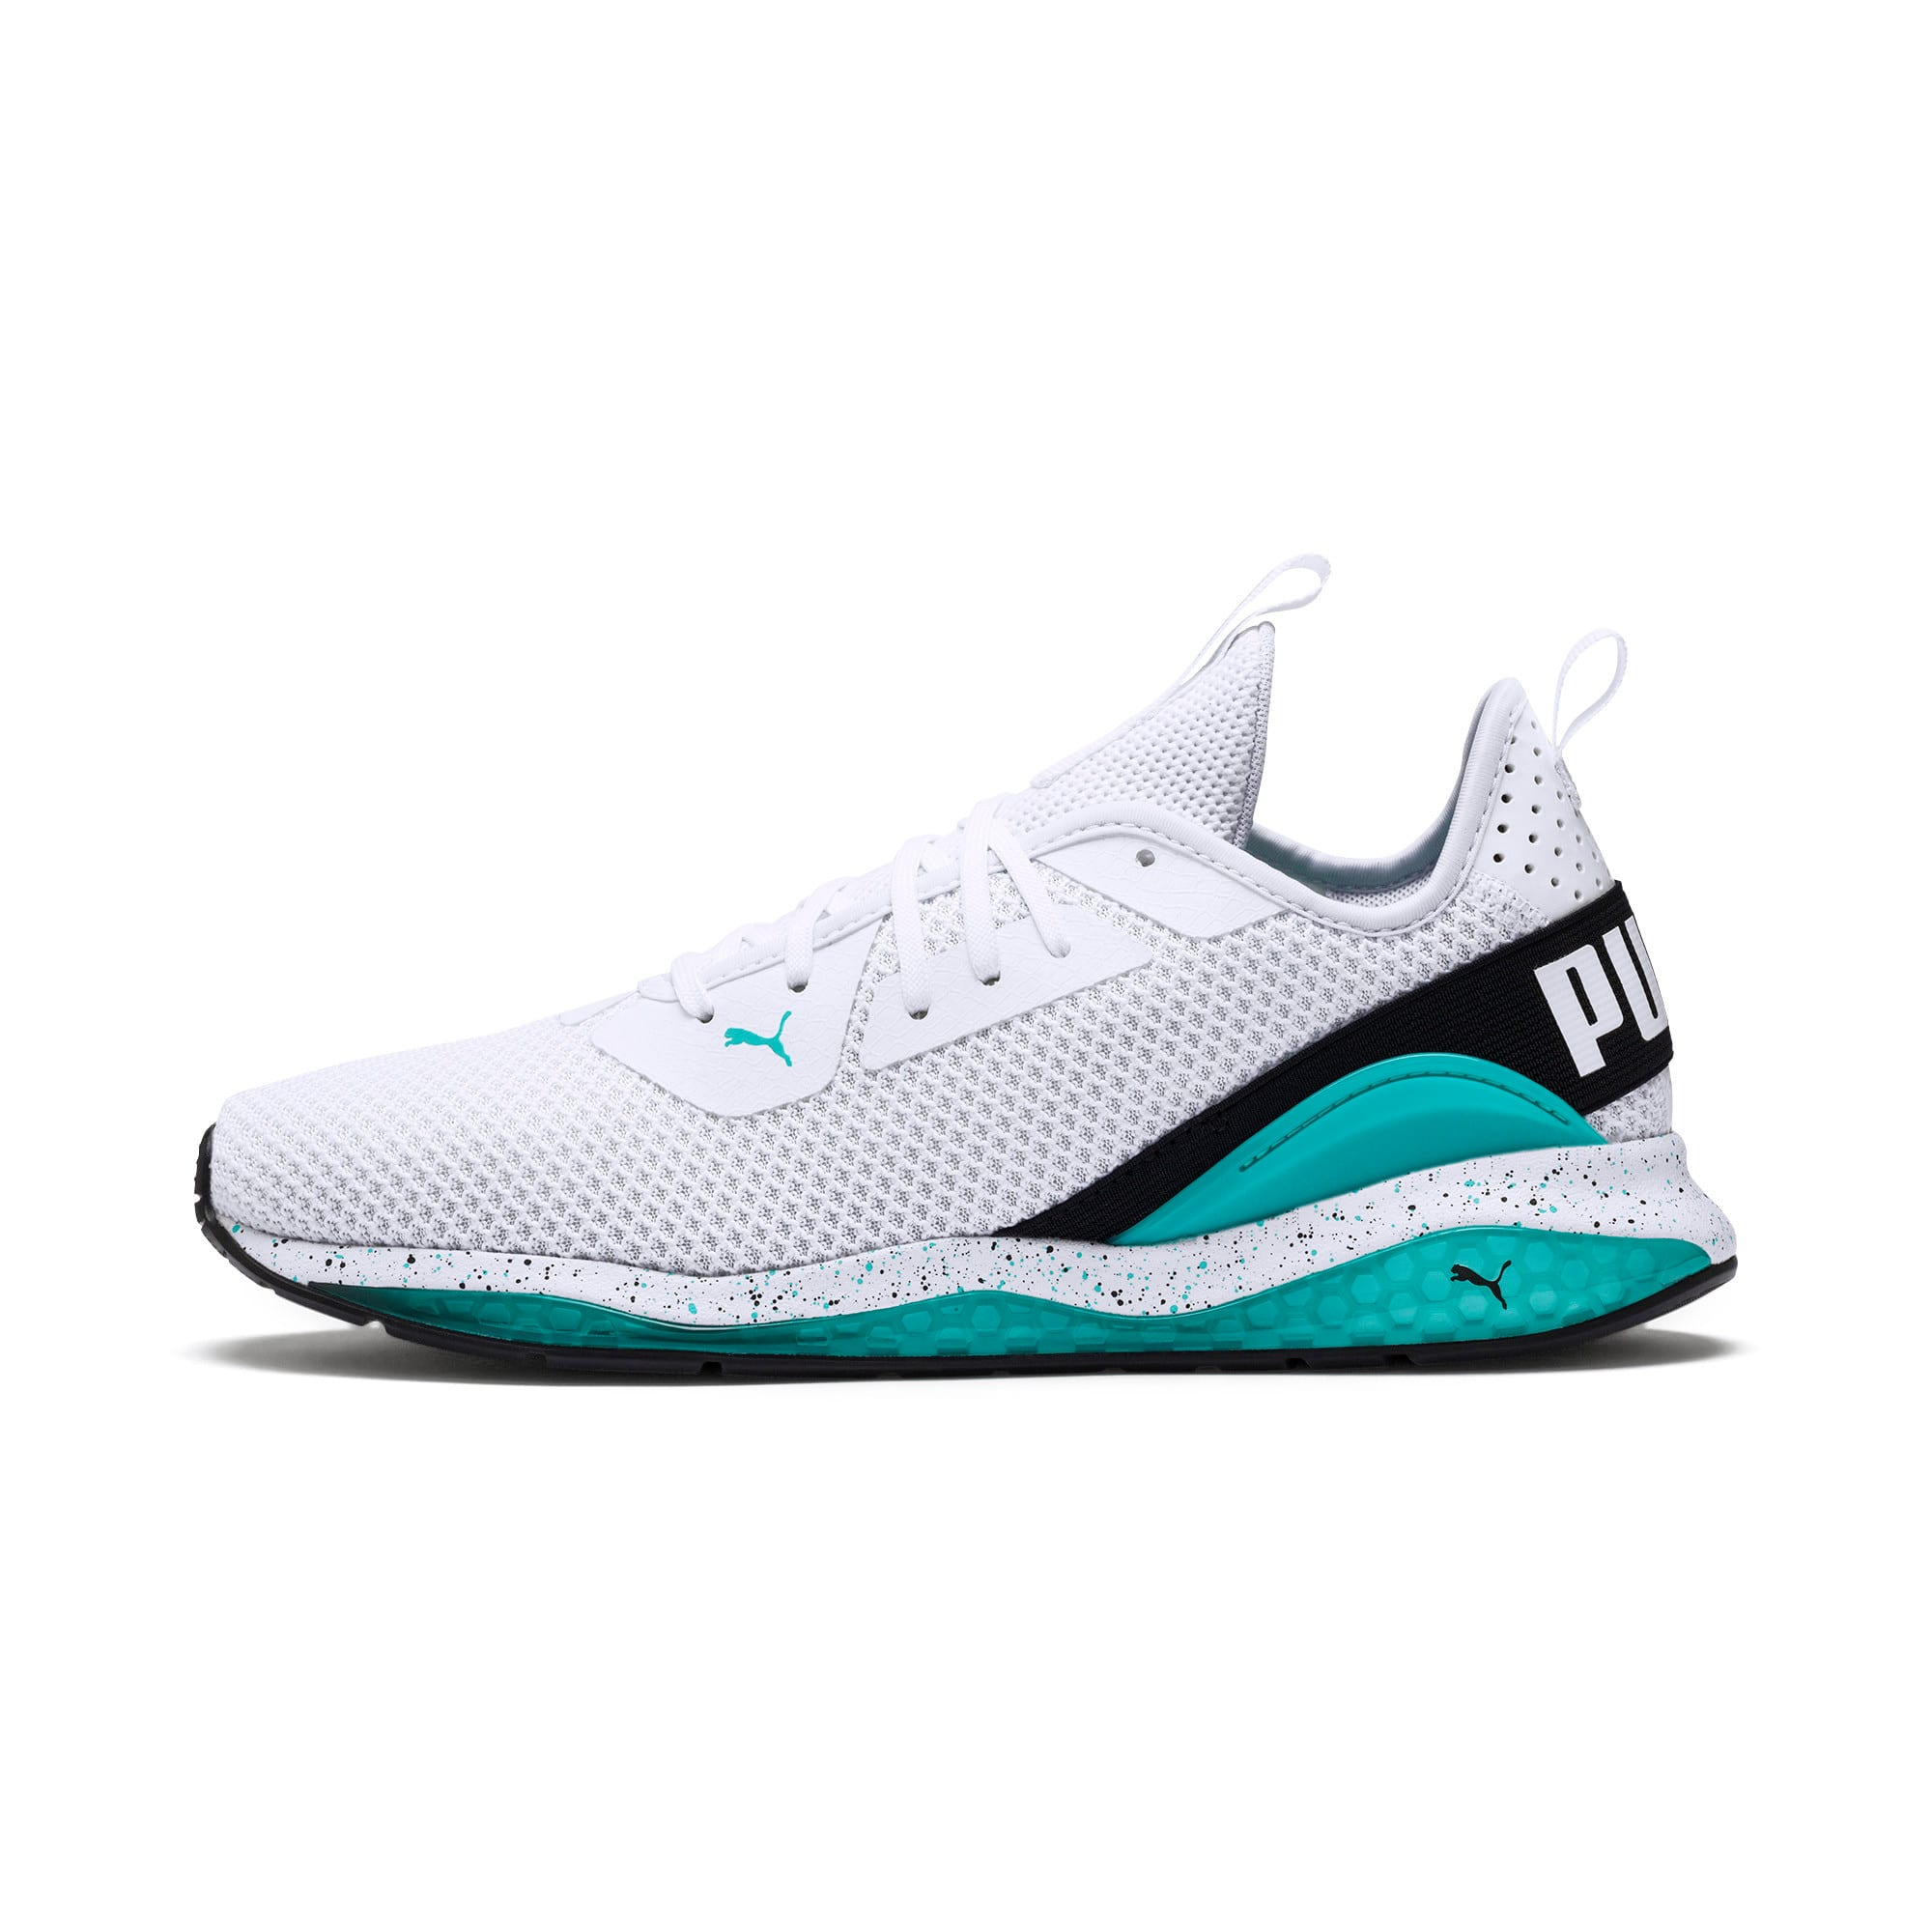 Thumbnail 1 of Cell Descend Weave Running Trainers, White-Black-Blue Turquoise, medium-IND